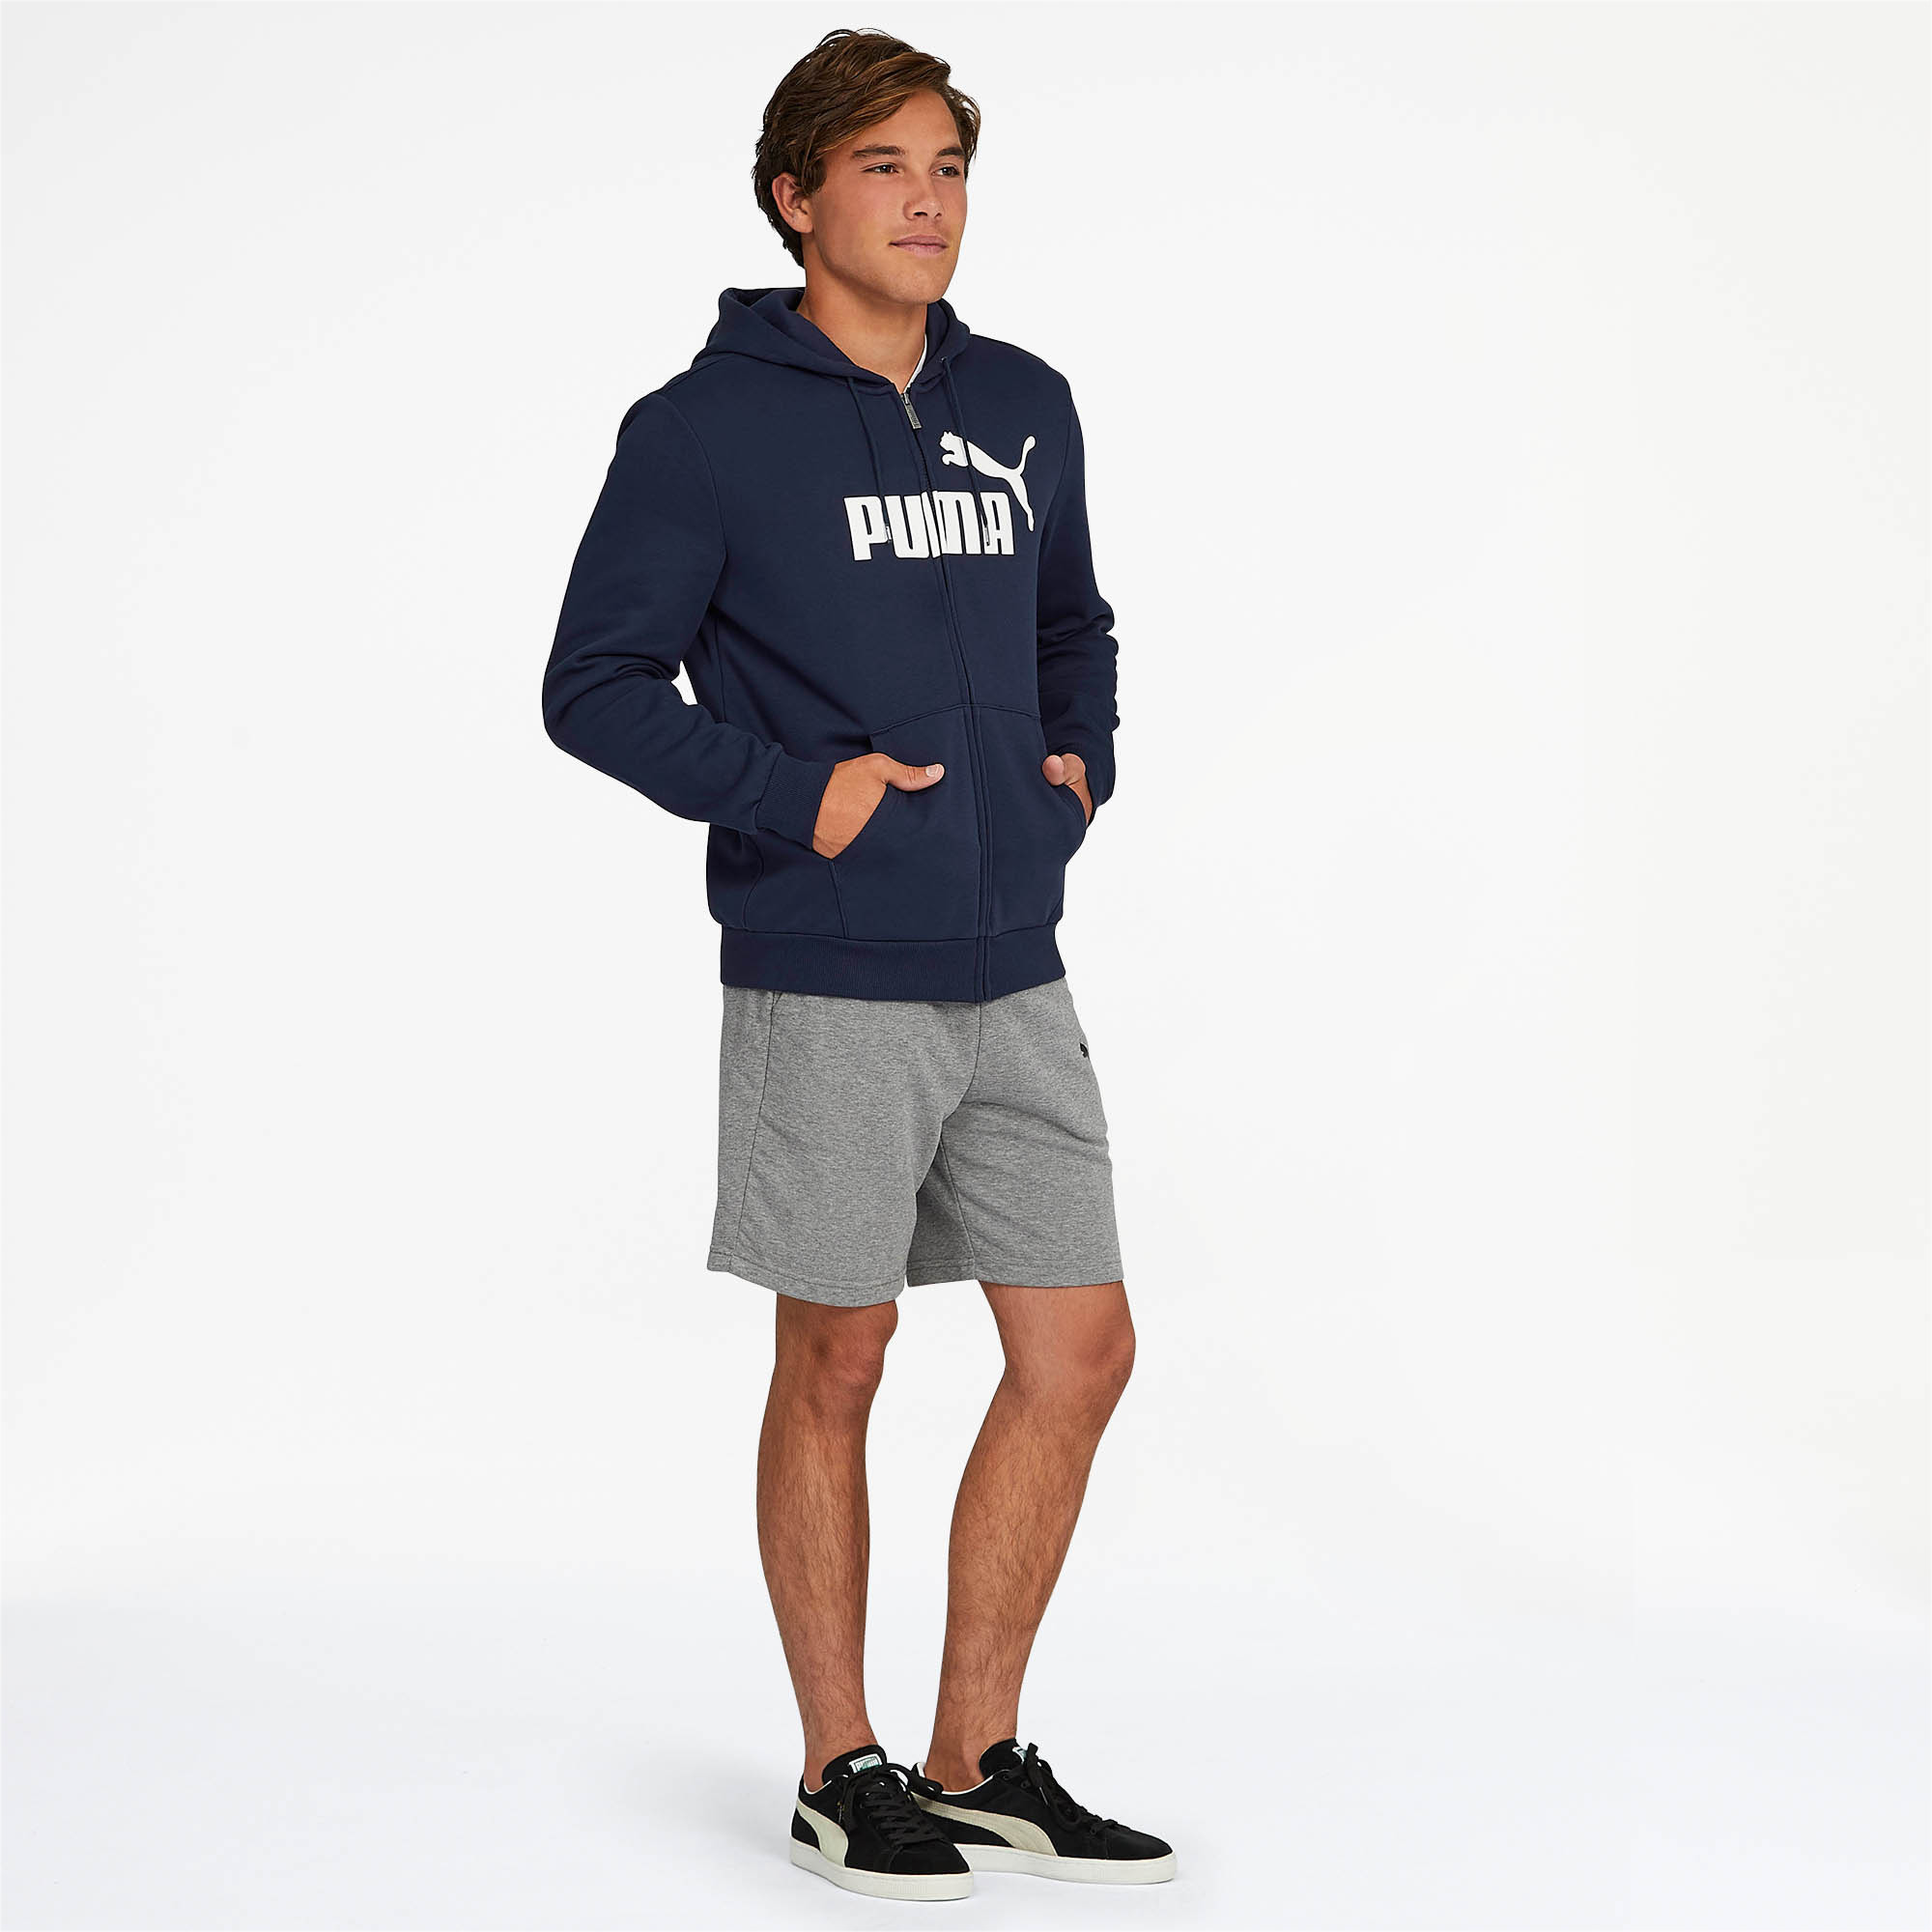 PUMA-Essentials-Men-039-s-Hooded-Fleece-Logo-Jacket-Men-Sweat-Basics thumbnail 16